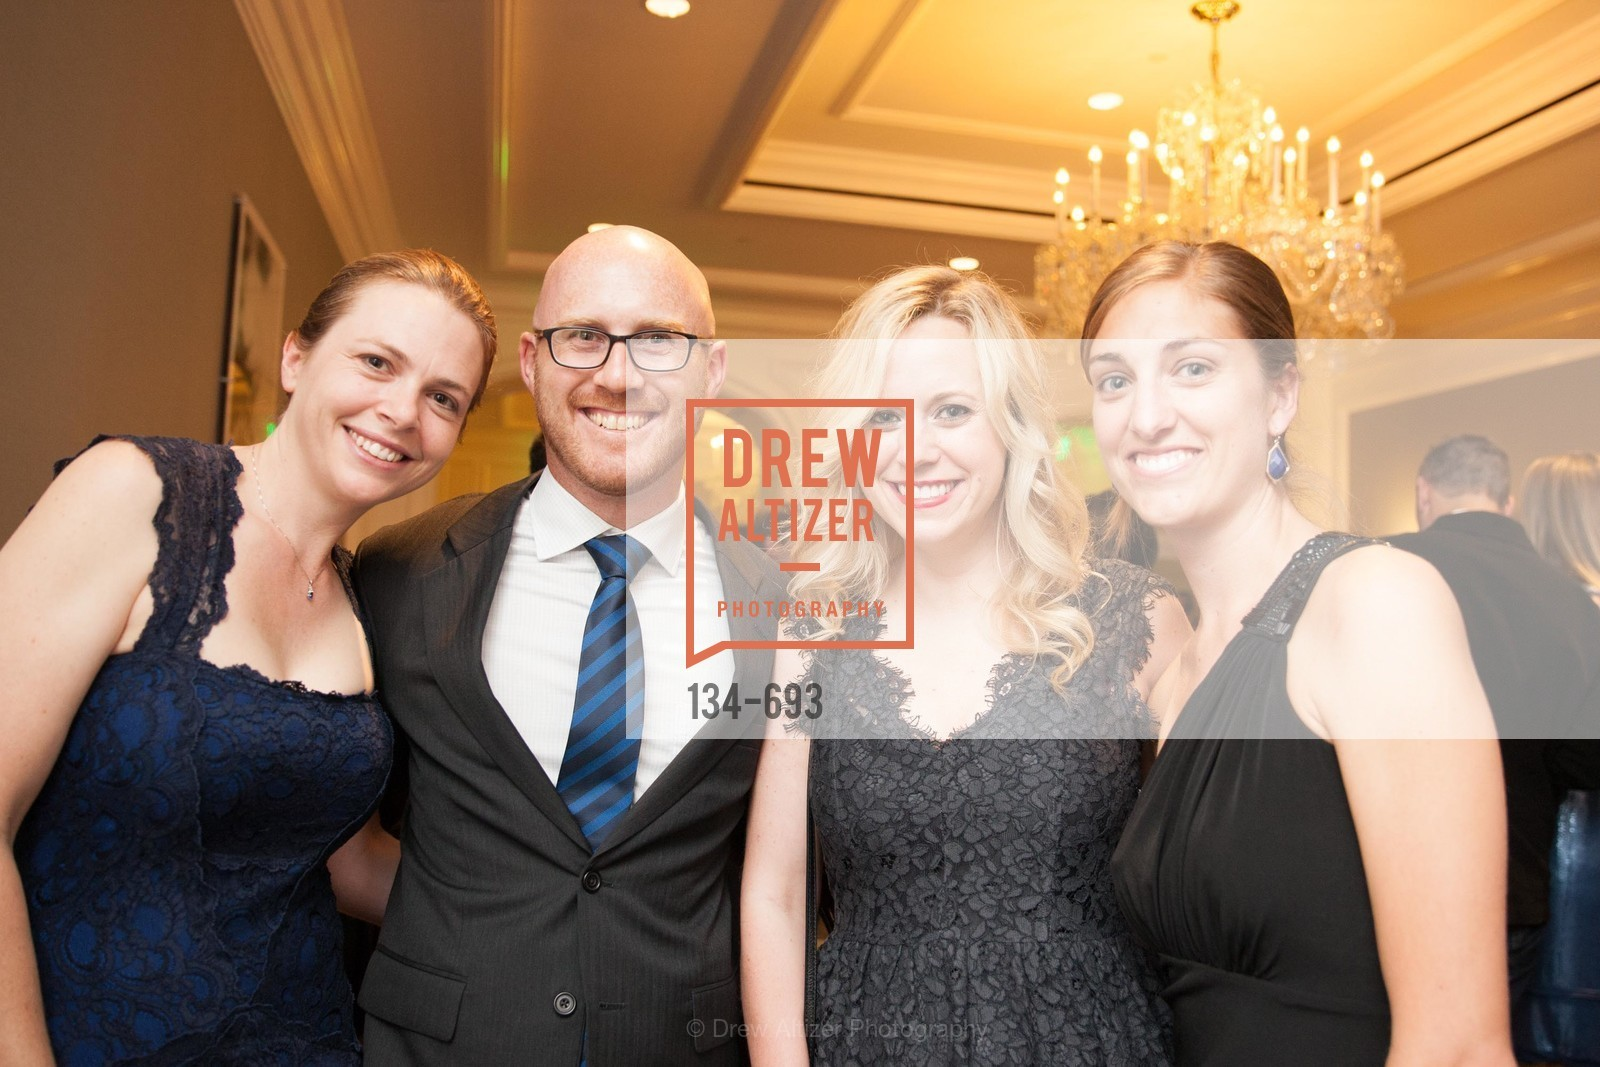 Geneva, Kearns JK Kearns, Liane Grant, Bridgett Gosseling, SFCASA'S Fostering Change Gala:  Room Without A Roof, US, May 1st, 2015,Drew Altizer, Drew Altizer Photography, full-service agency, private events, San Francisco photographer, photographer california